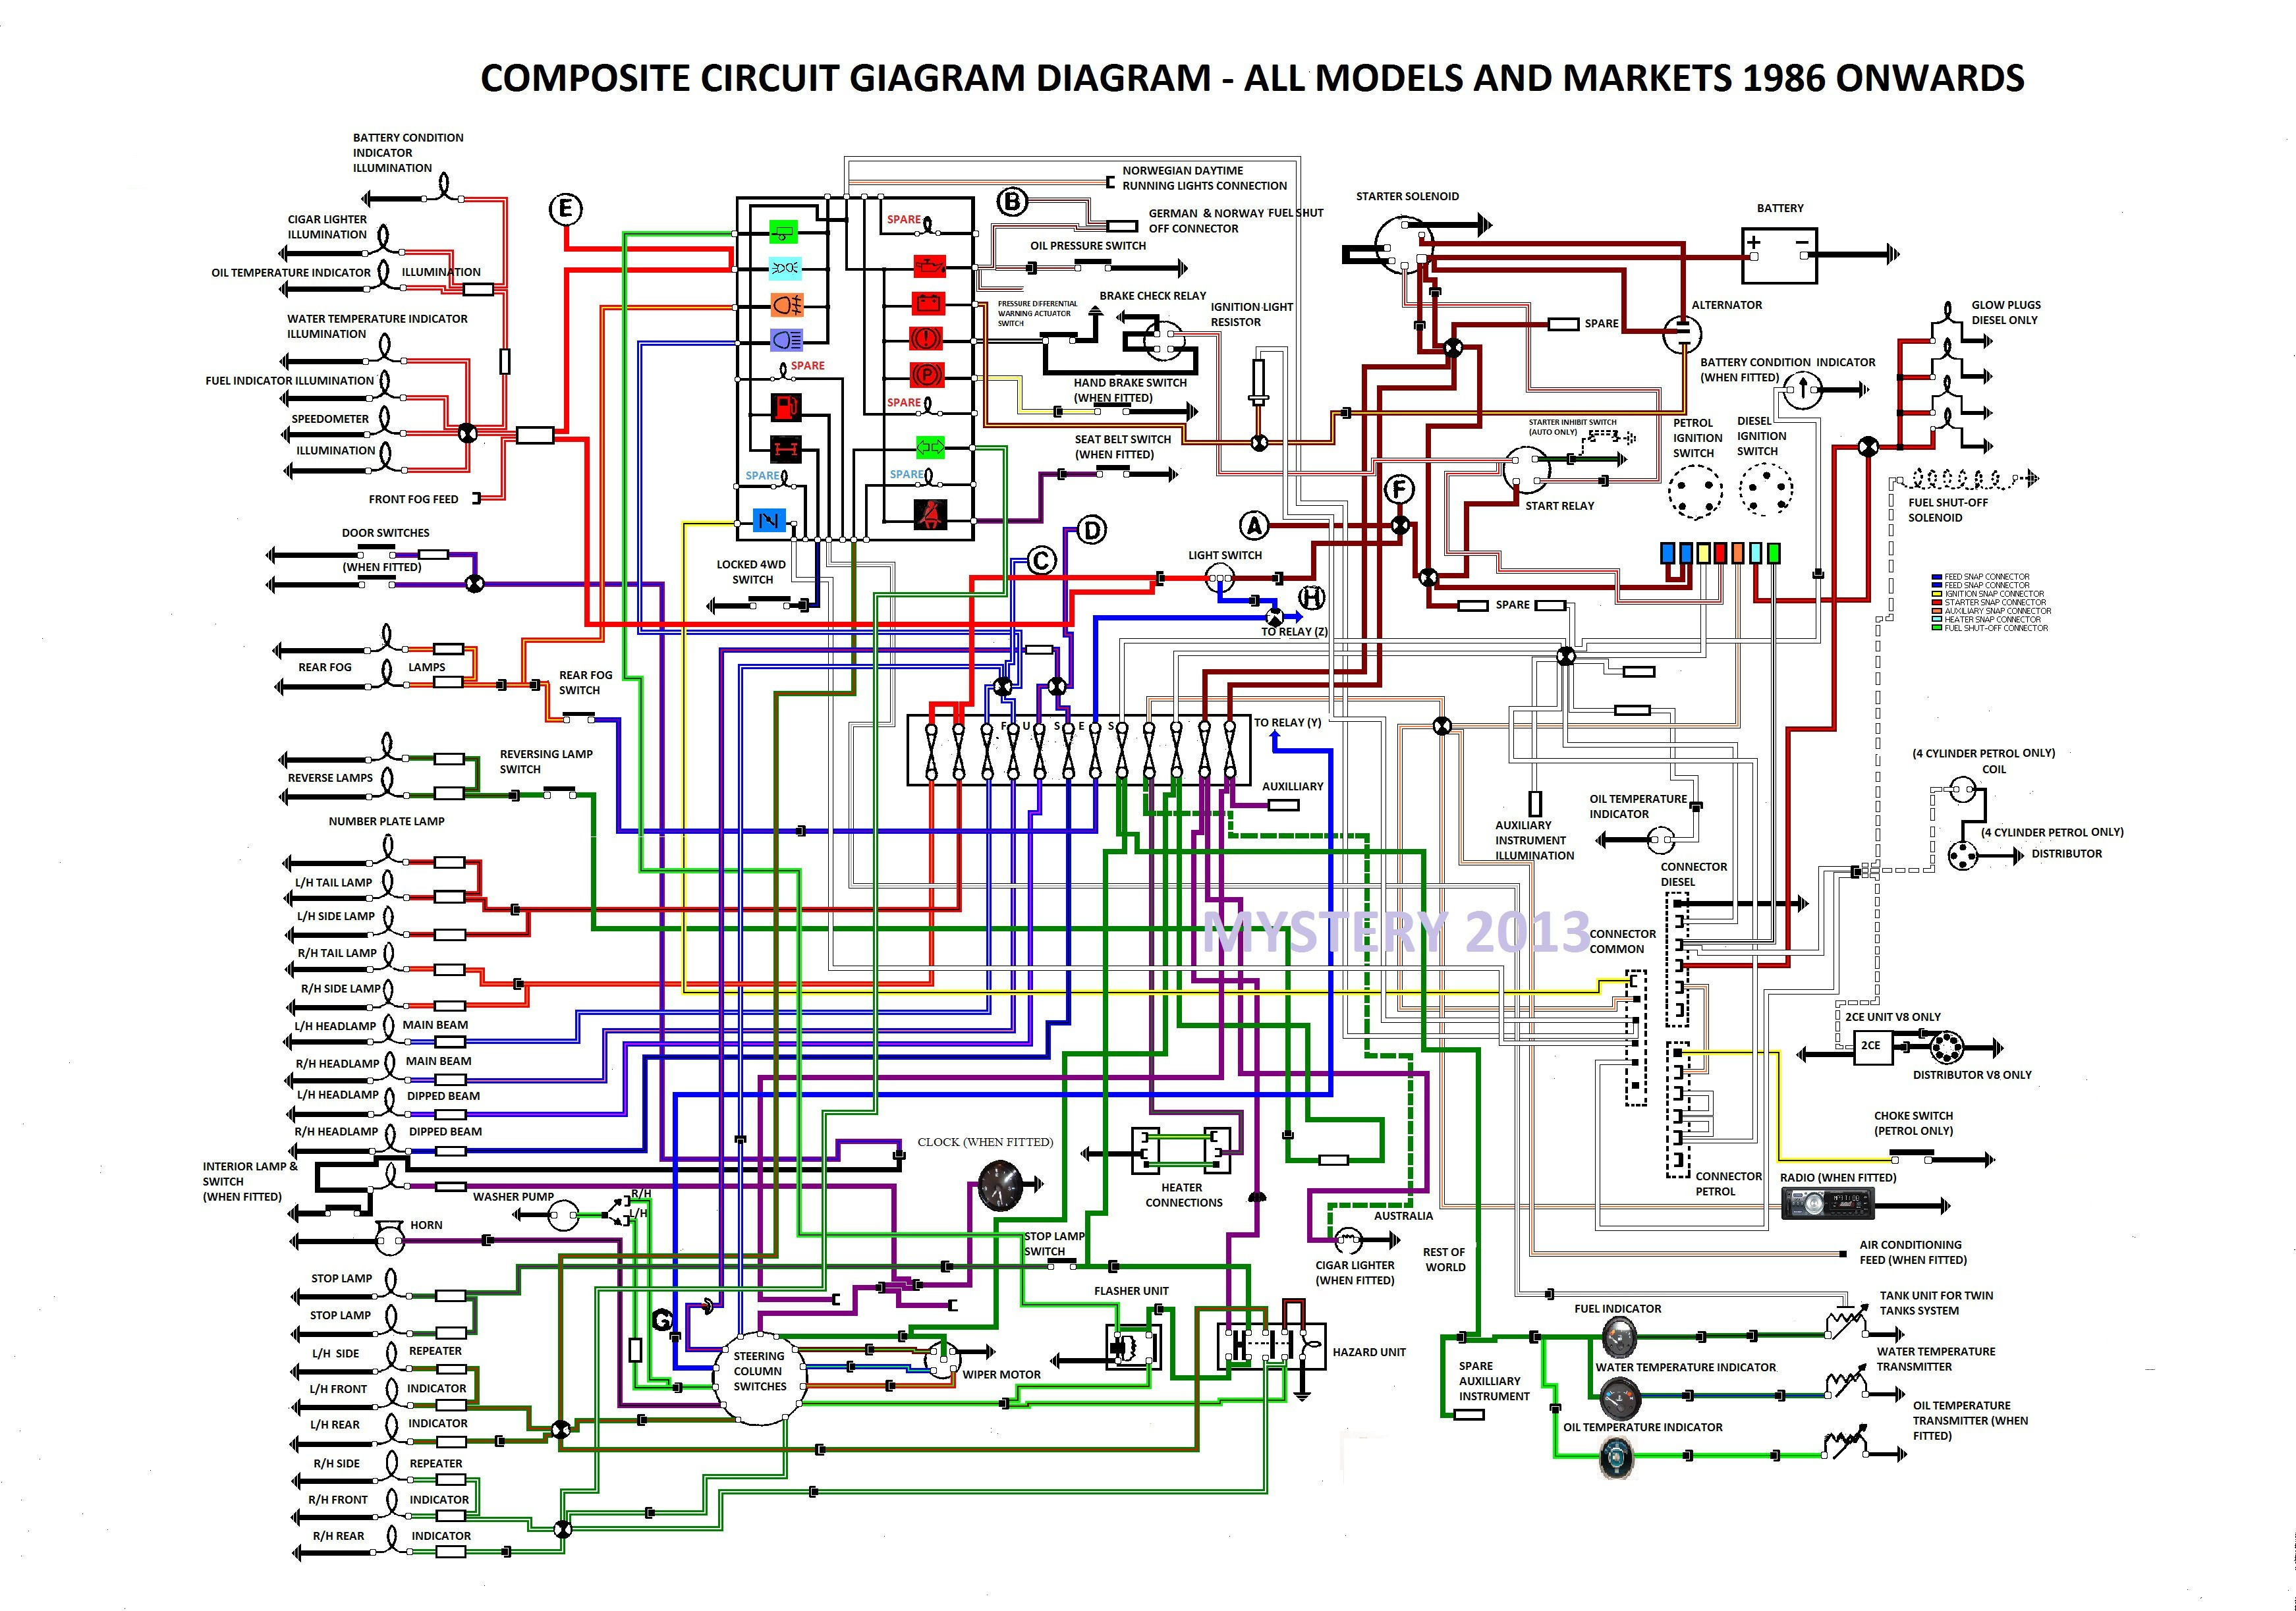 2003 Land Rover Discovery Engine Diagram 2005 Land Rover Lr3 Wiring Diagram Worksheet and Wiring Diagram • Of 2003 Land Rover Discovery Engine Diagram